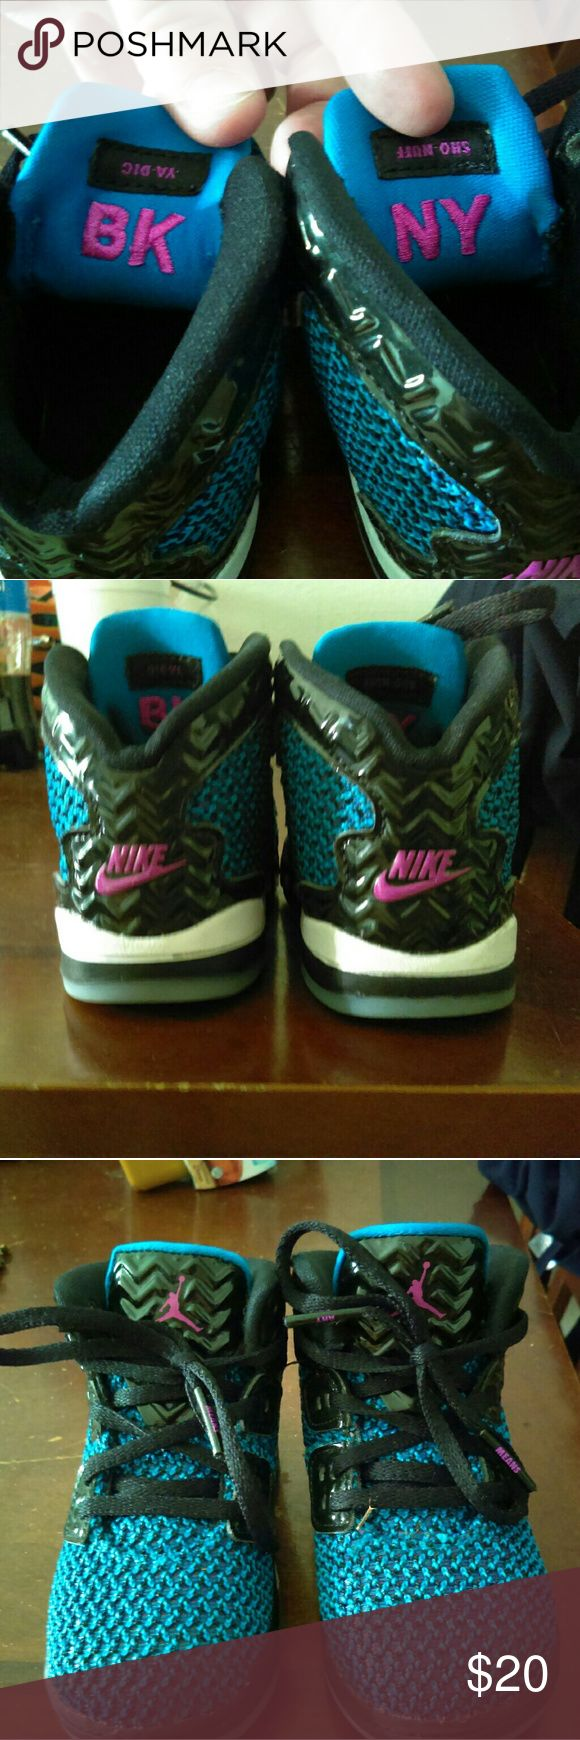 6c Jordan Spike Lee's Mint condition, only worn a couple times Jordan spike Lee's. Size 6c Jordan Shoes Sneakers